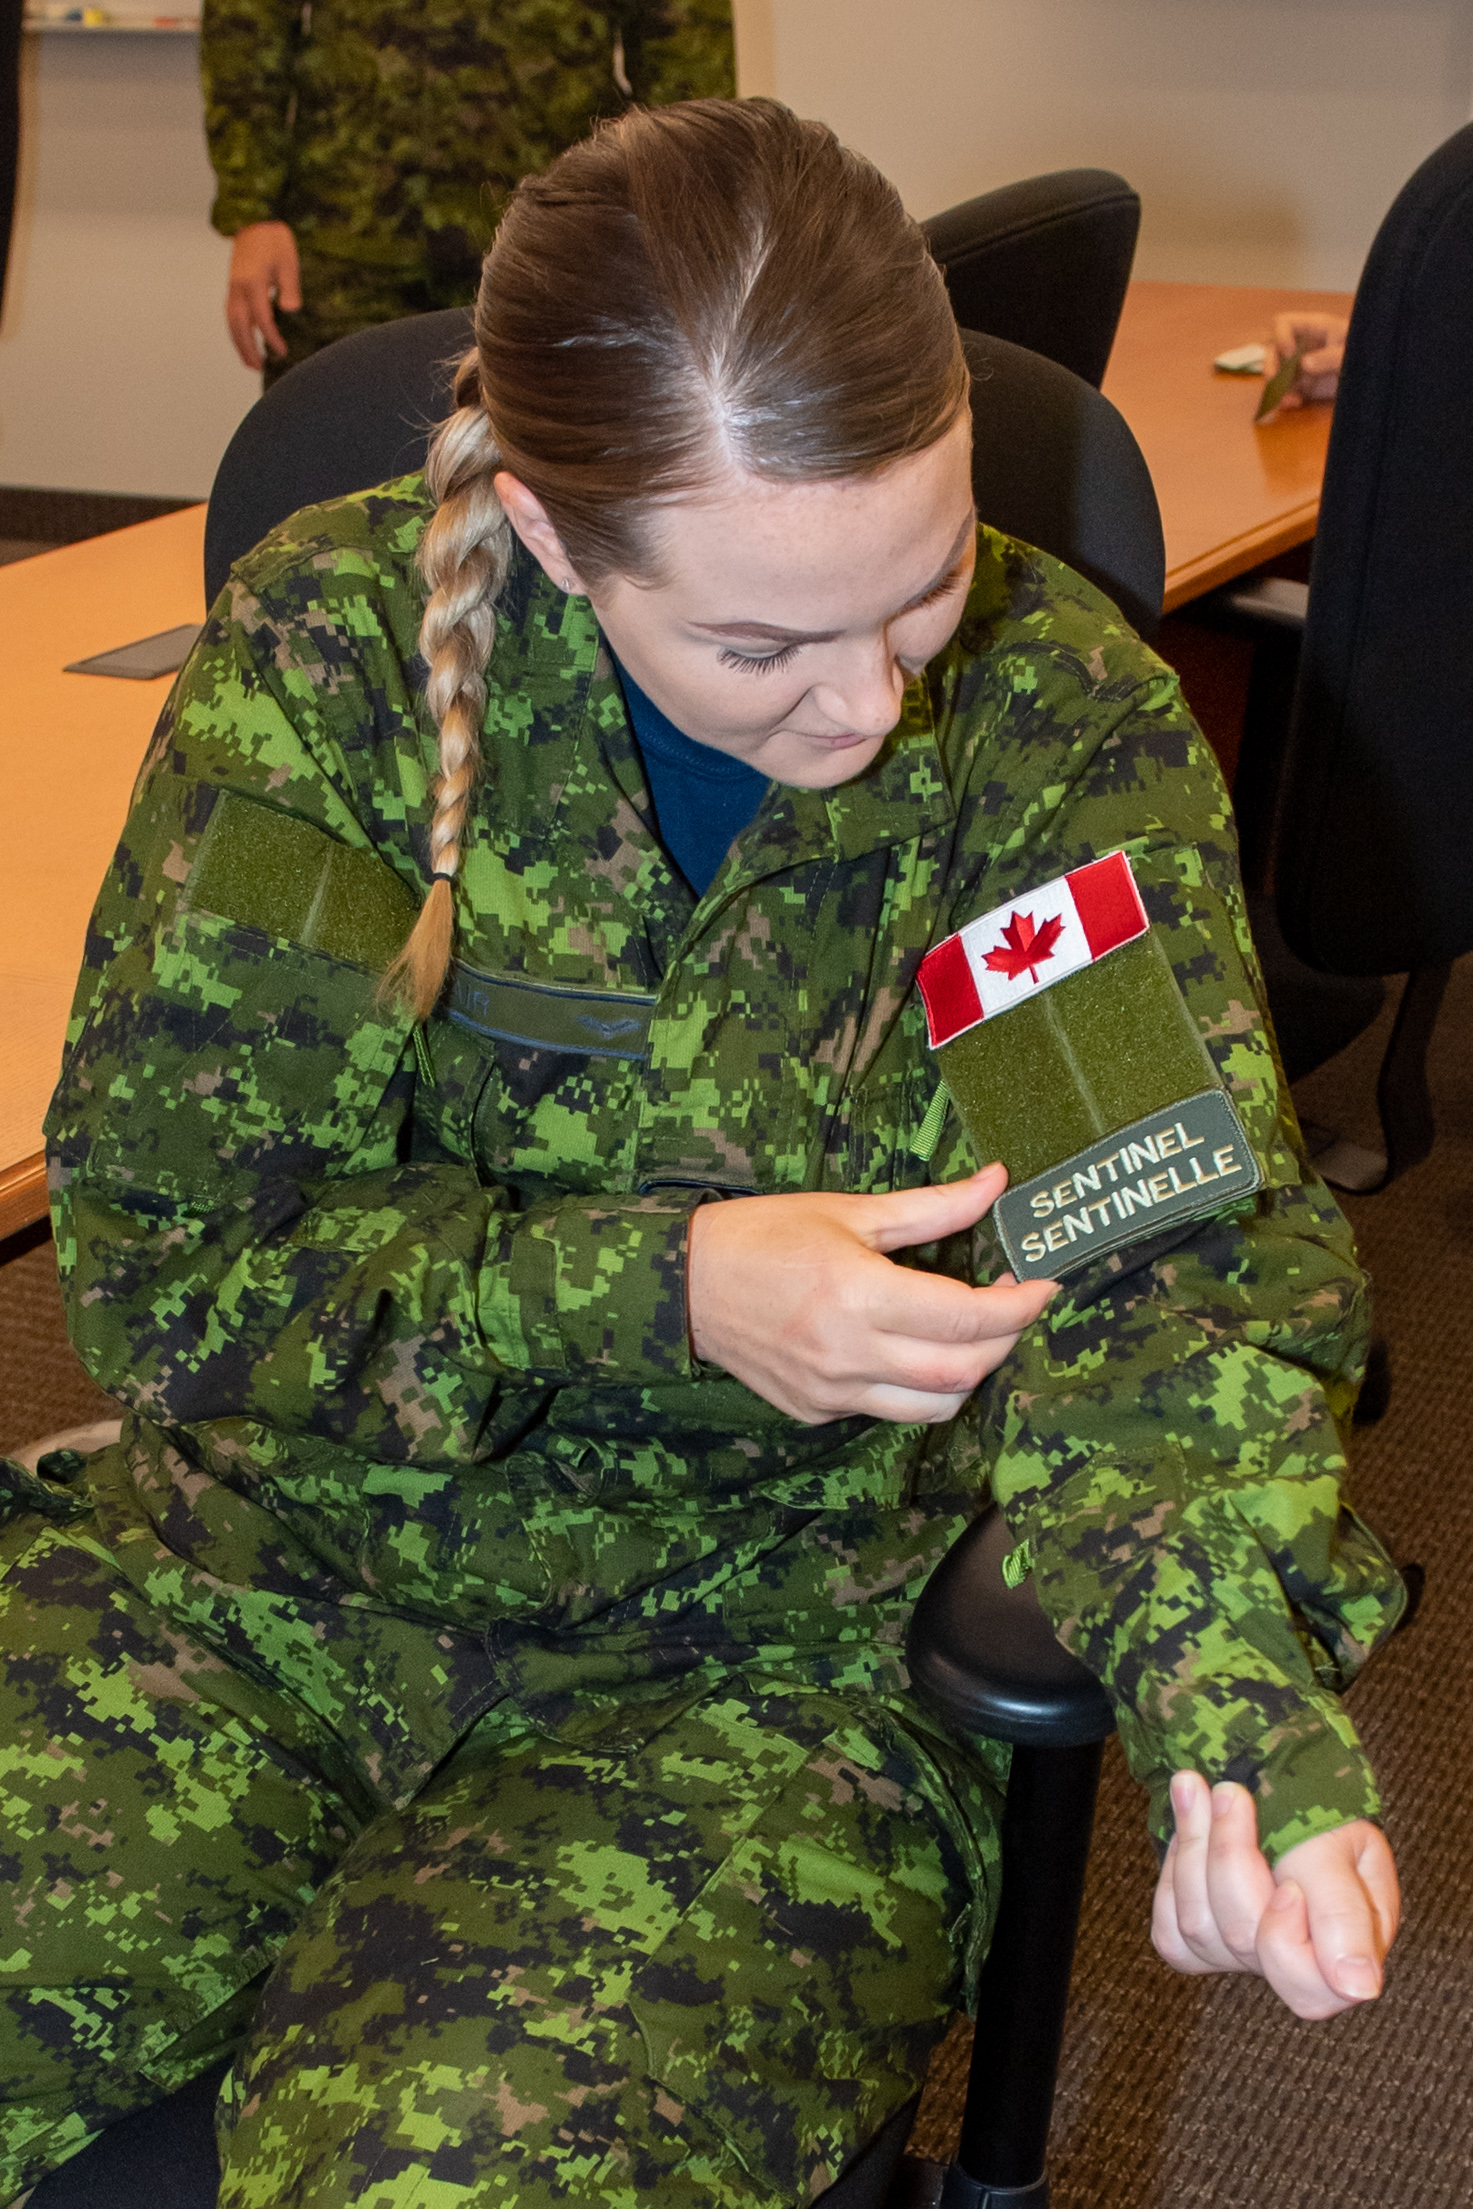 Sergeant Leslie Blair affixes her new patch to her uniform during a ceremony to recognize her participation in the Wing's Lead Squadron Sentinel program on July 13, 2020, at the Admirals Falls Centre, 12 Wing Shearwater. PHOTO: Leading Seaman Laurance Clarke